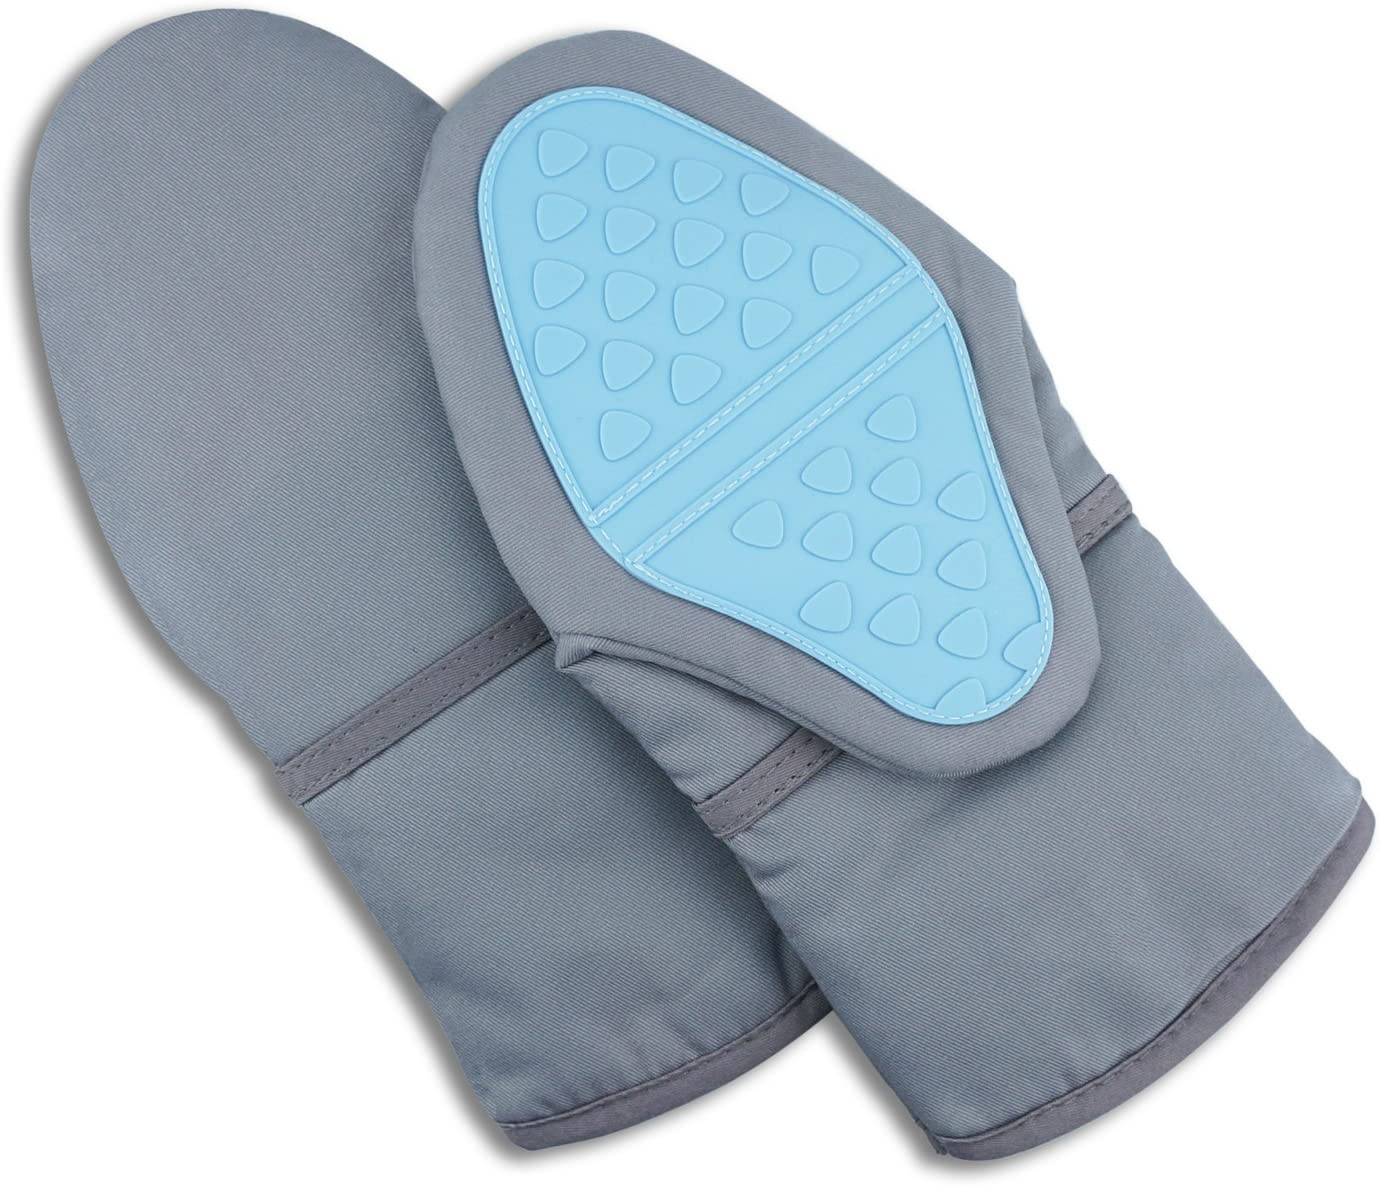 Emiica Cotton and Silicone Oven Mitts, Heat Resistant to 500° F, Long Oven Gloves with Non-Slip Silicone Grip for Kitchen Cooking, Baking and Grill, Set of 2 (Gray, Two Standard)